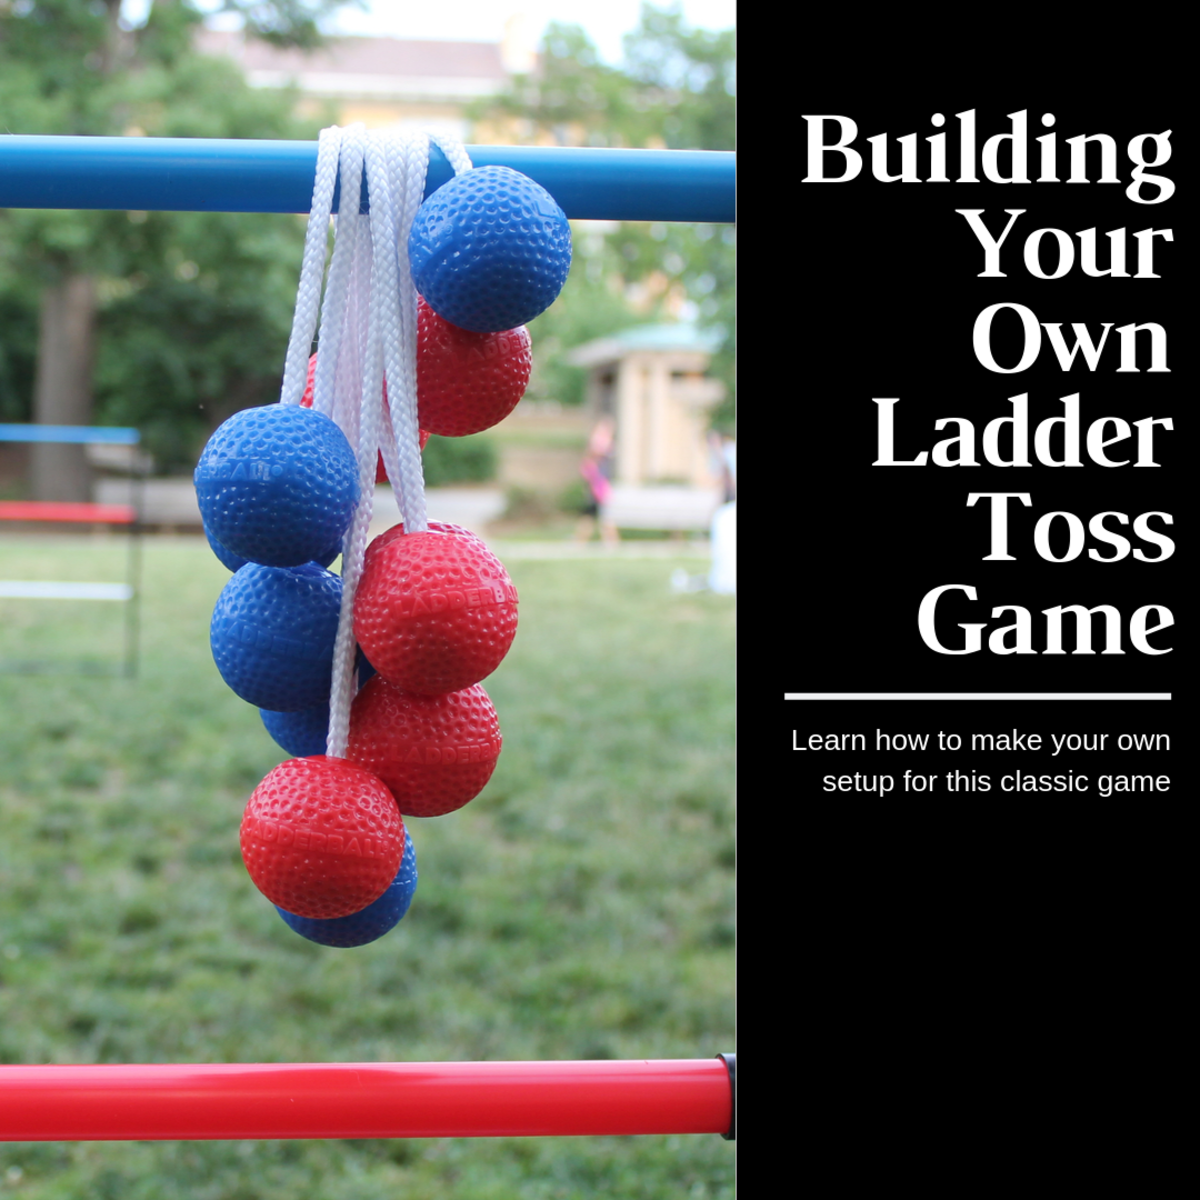 Plans for How to Build and Play Ladder Toss